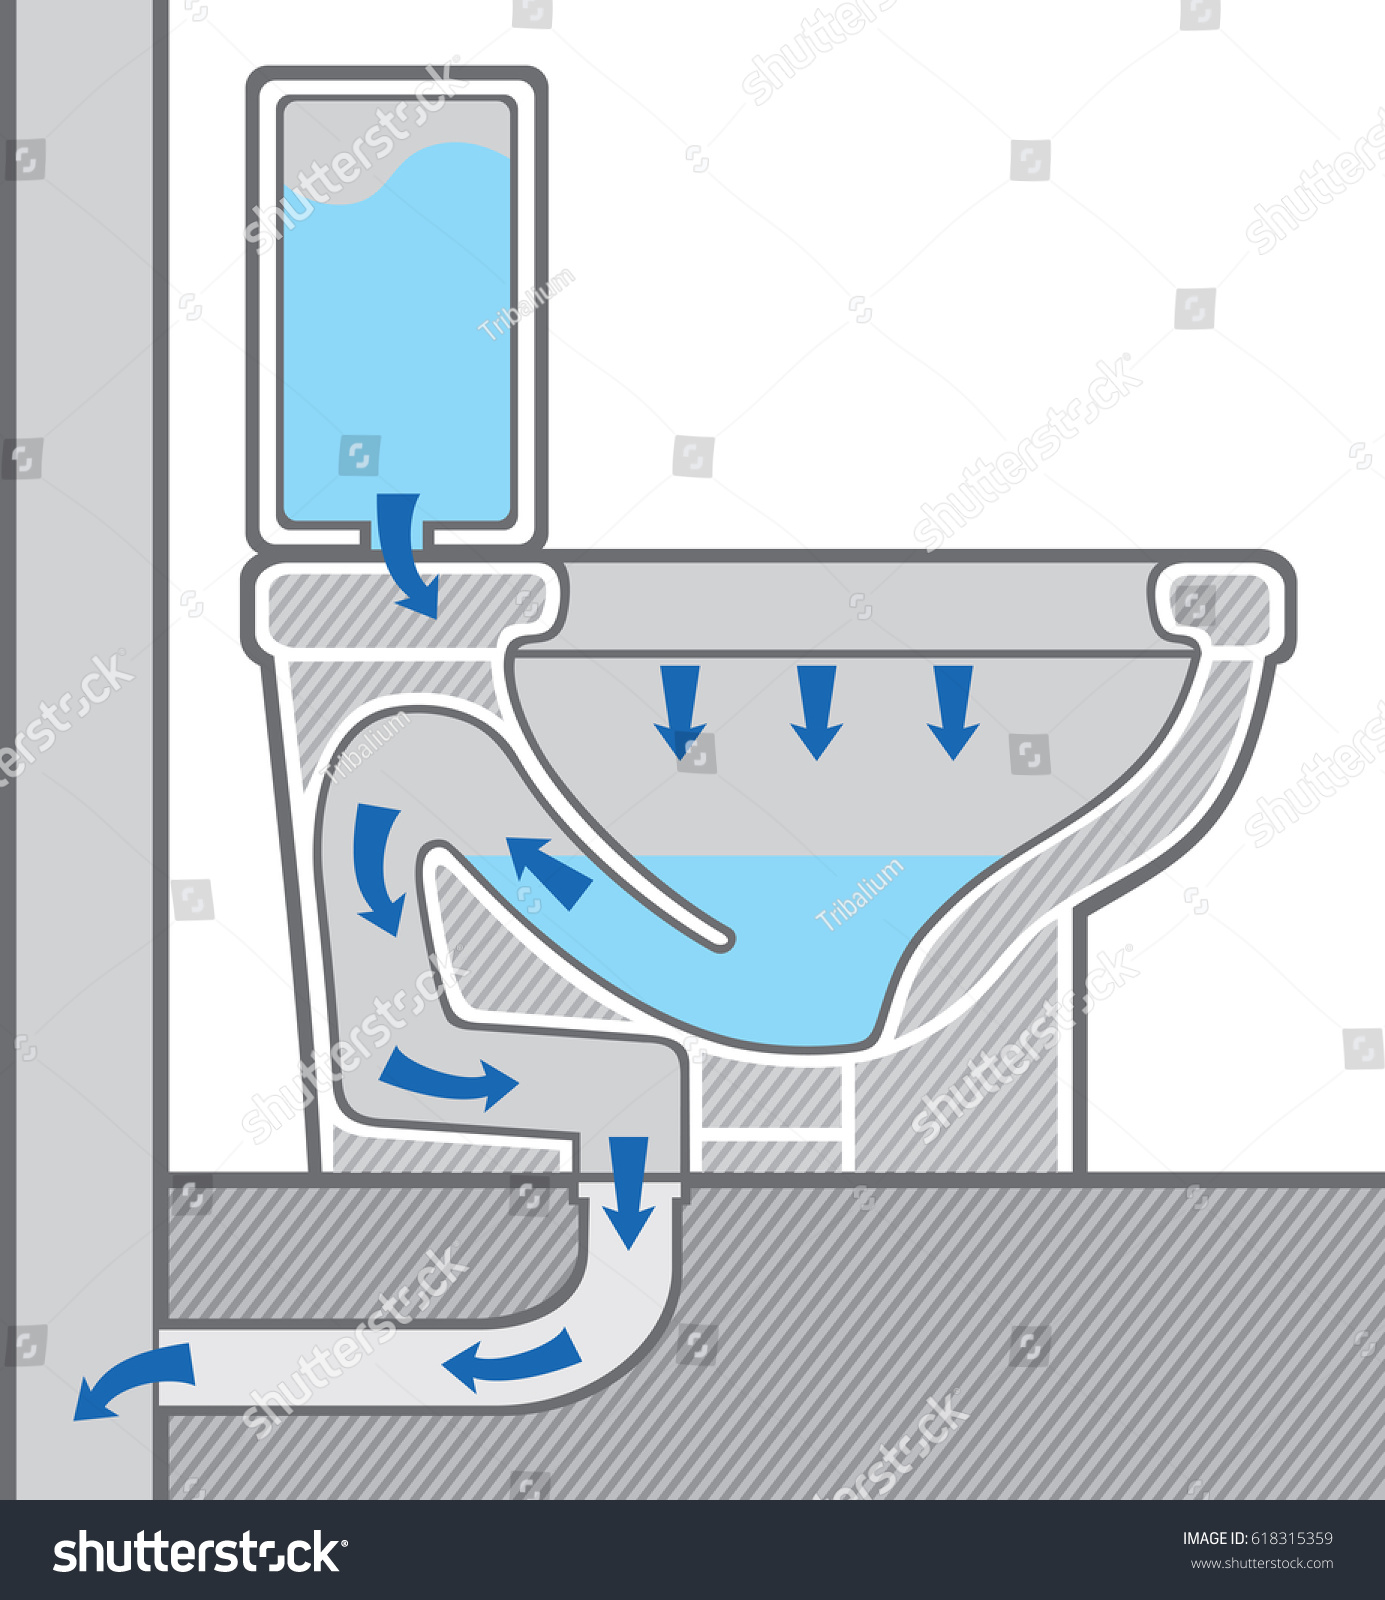 diagram of a toilet flush system razor e100 electric scooter wiring bowl structure cross section stock vector